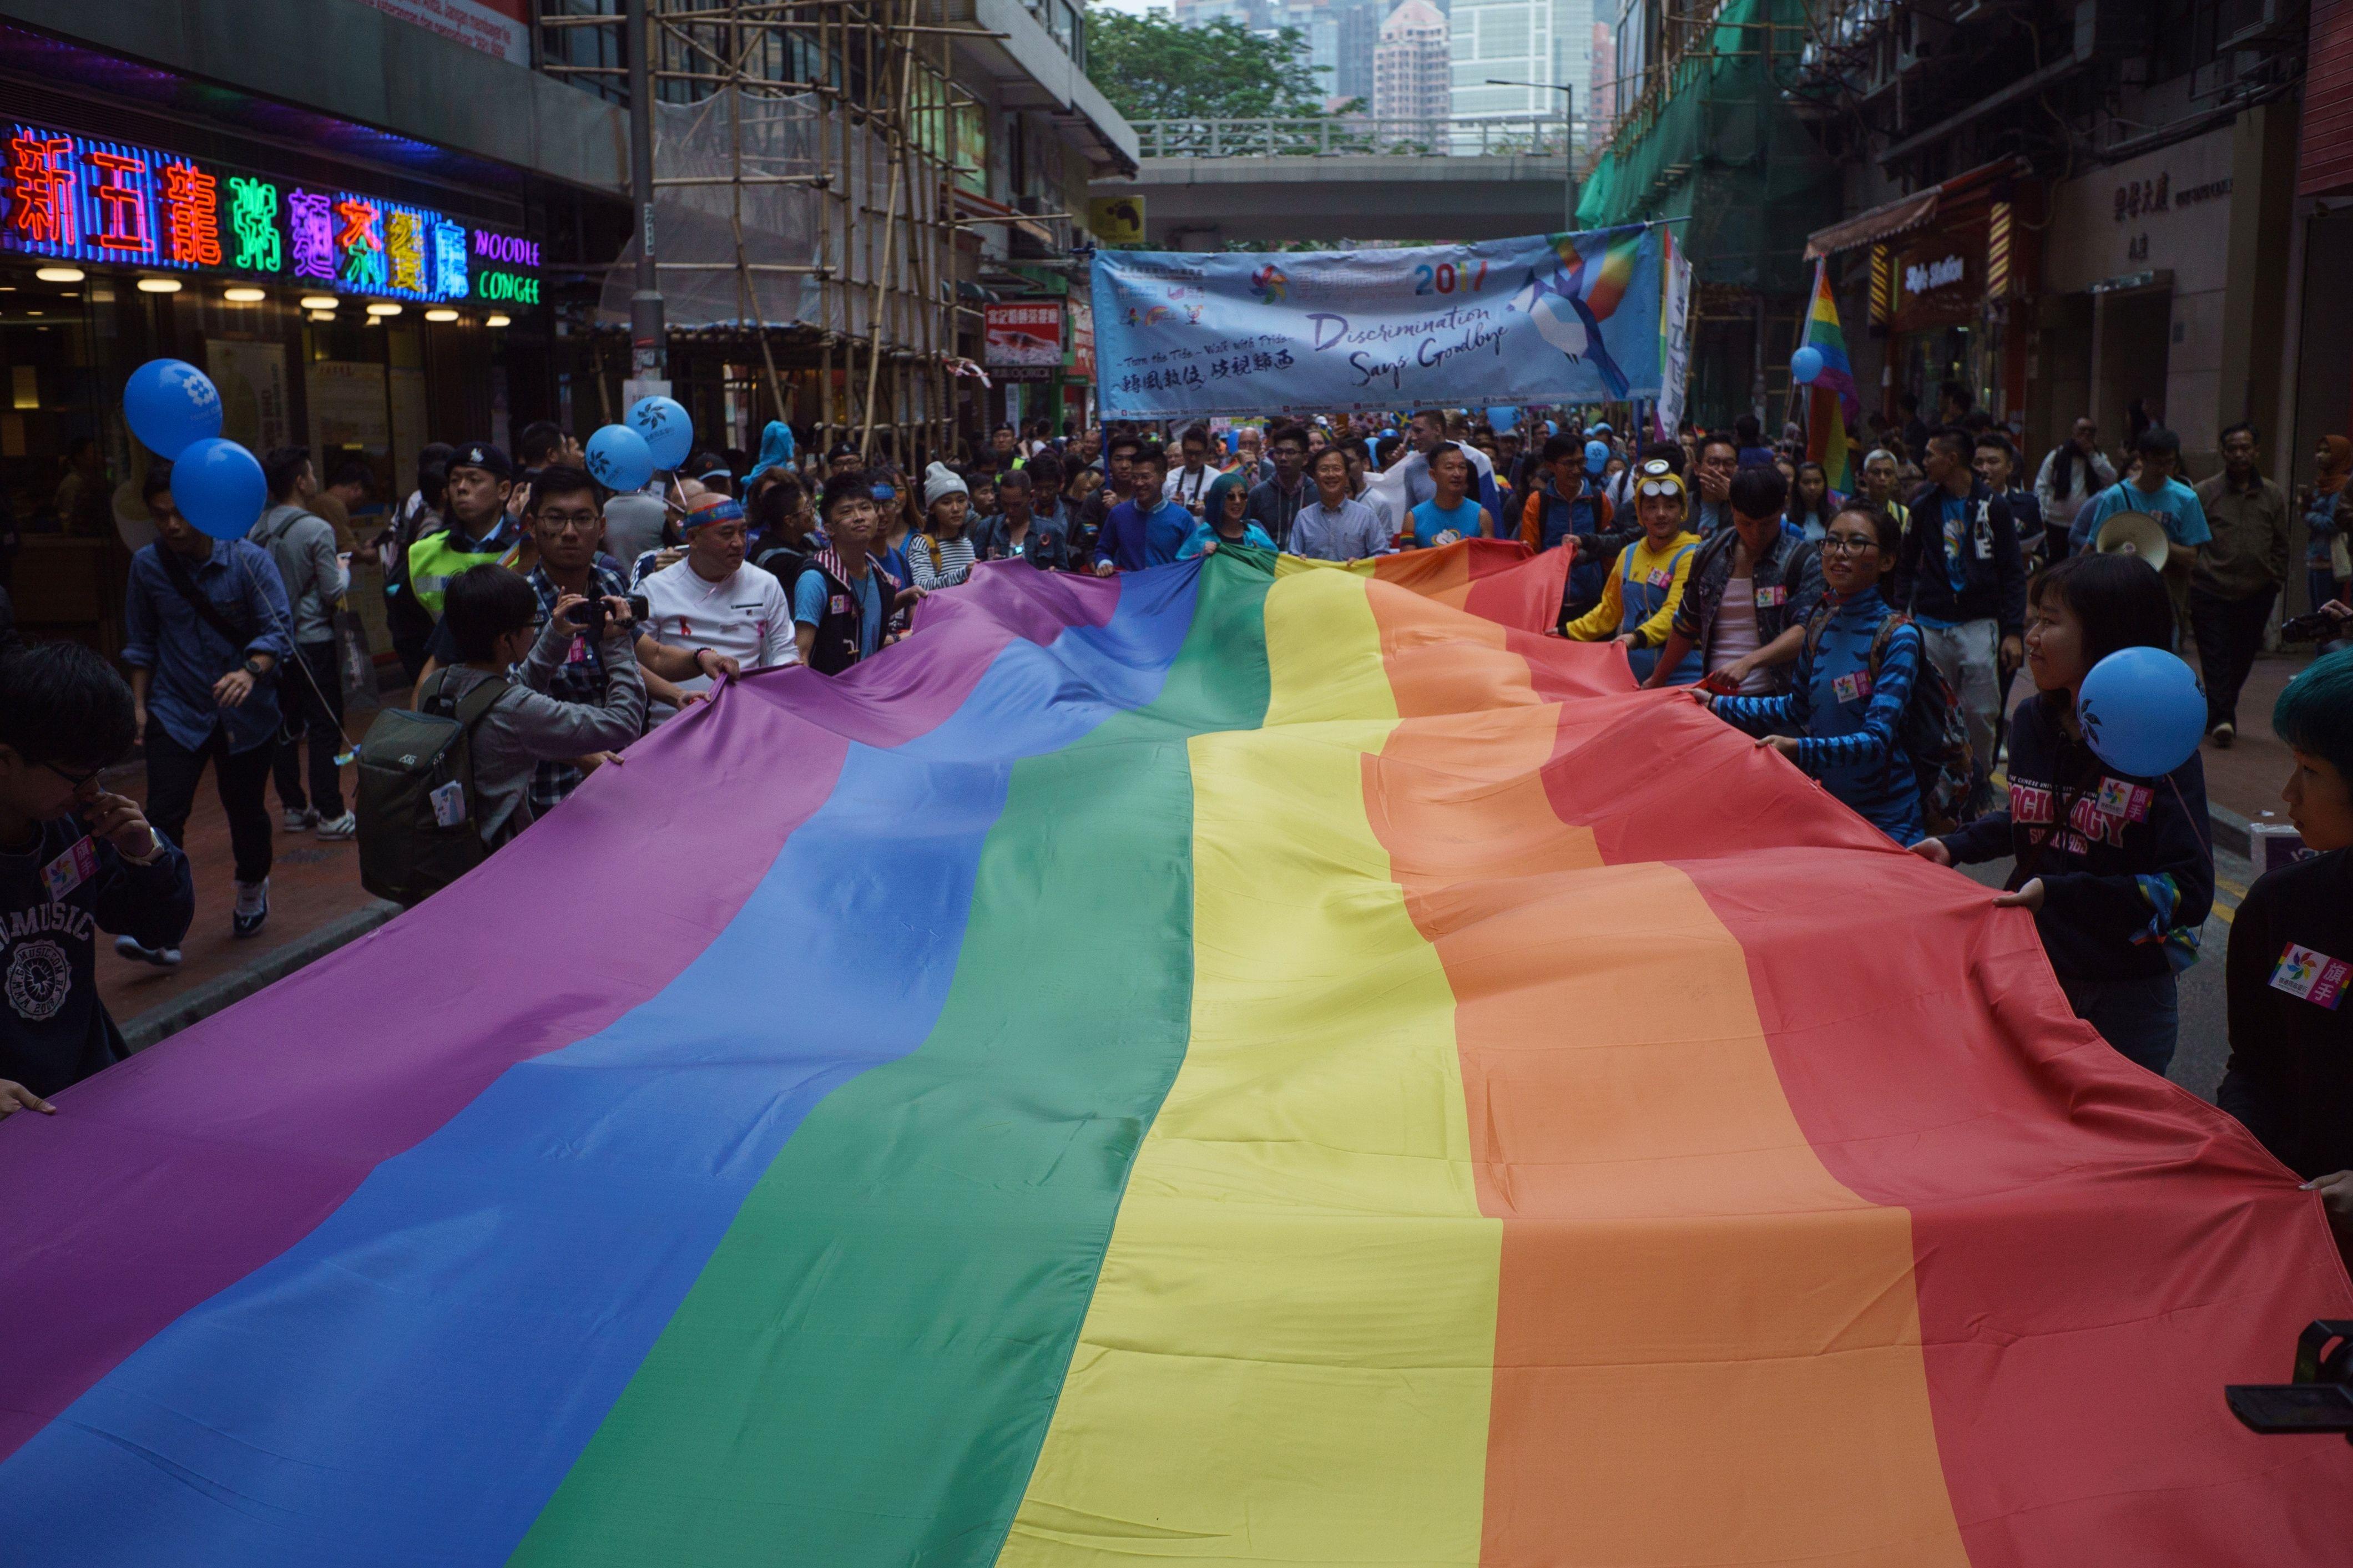 A giant rainbow flag is displayed during Hong Kong's annual pride parade on Nov. 25, 2017.